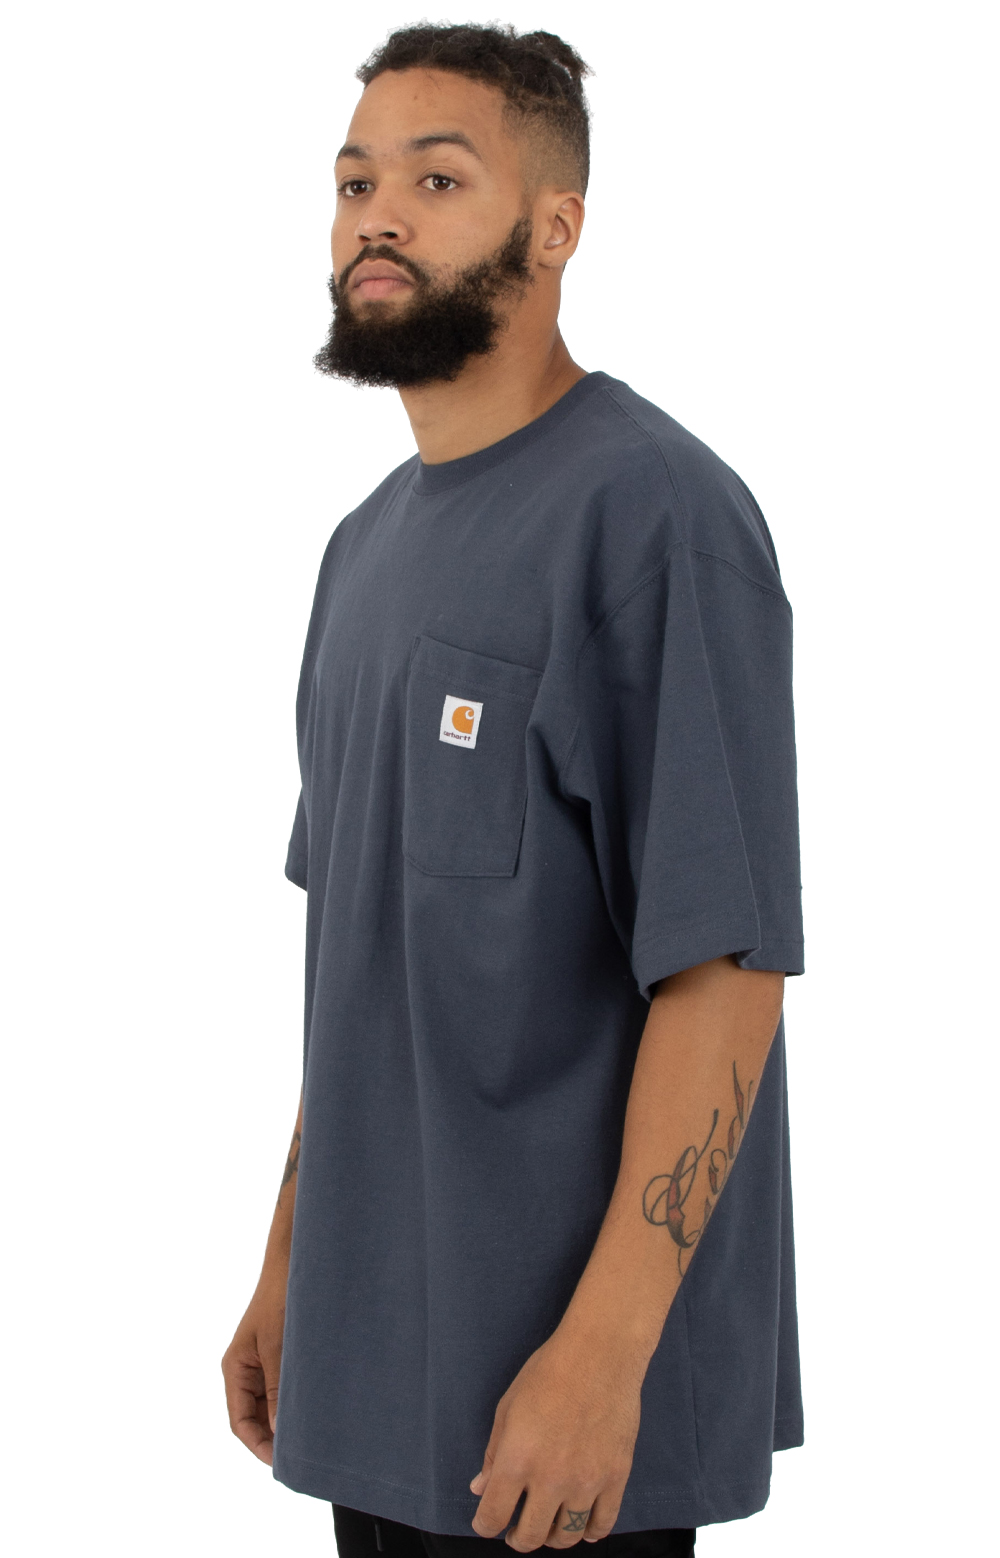 (K87) Workwear Pocket T-Shirt - Navy 2